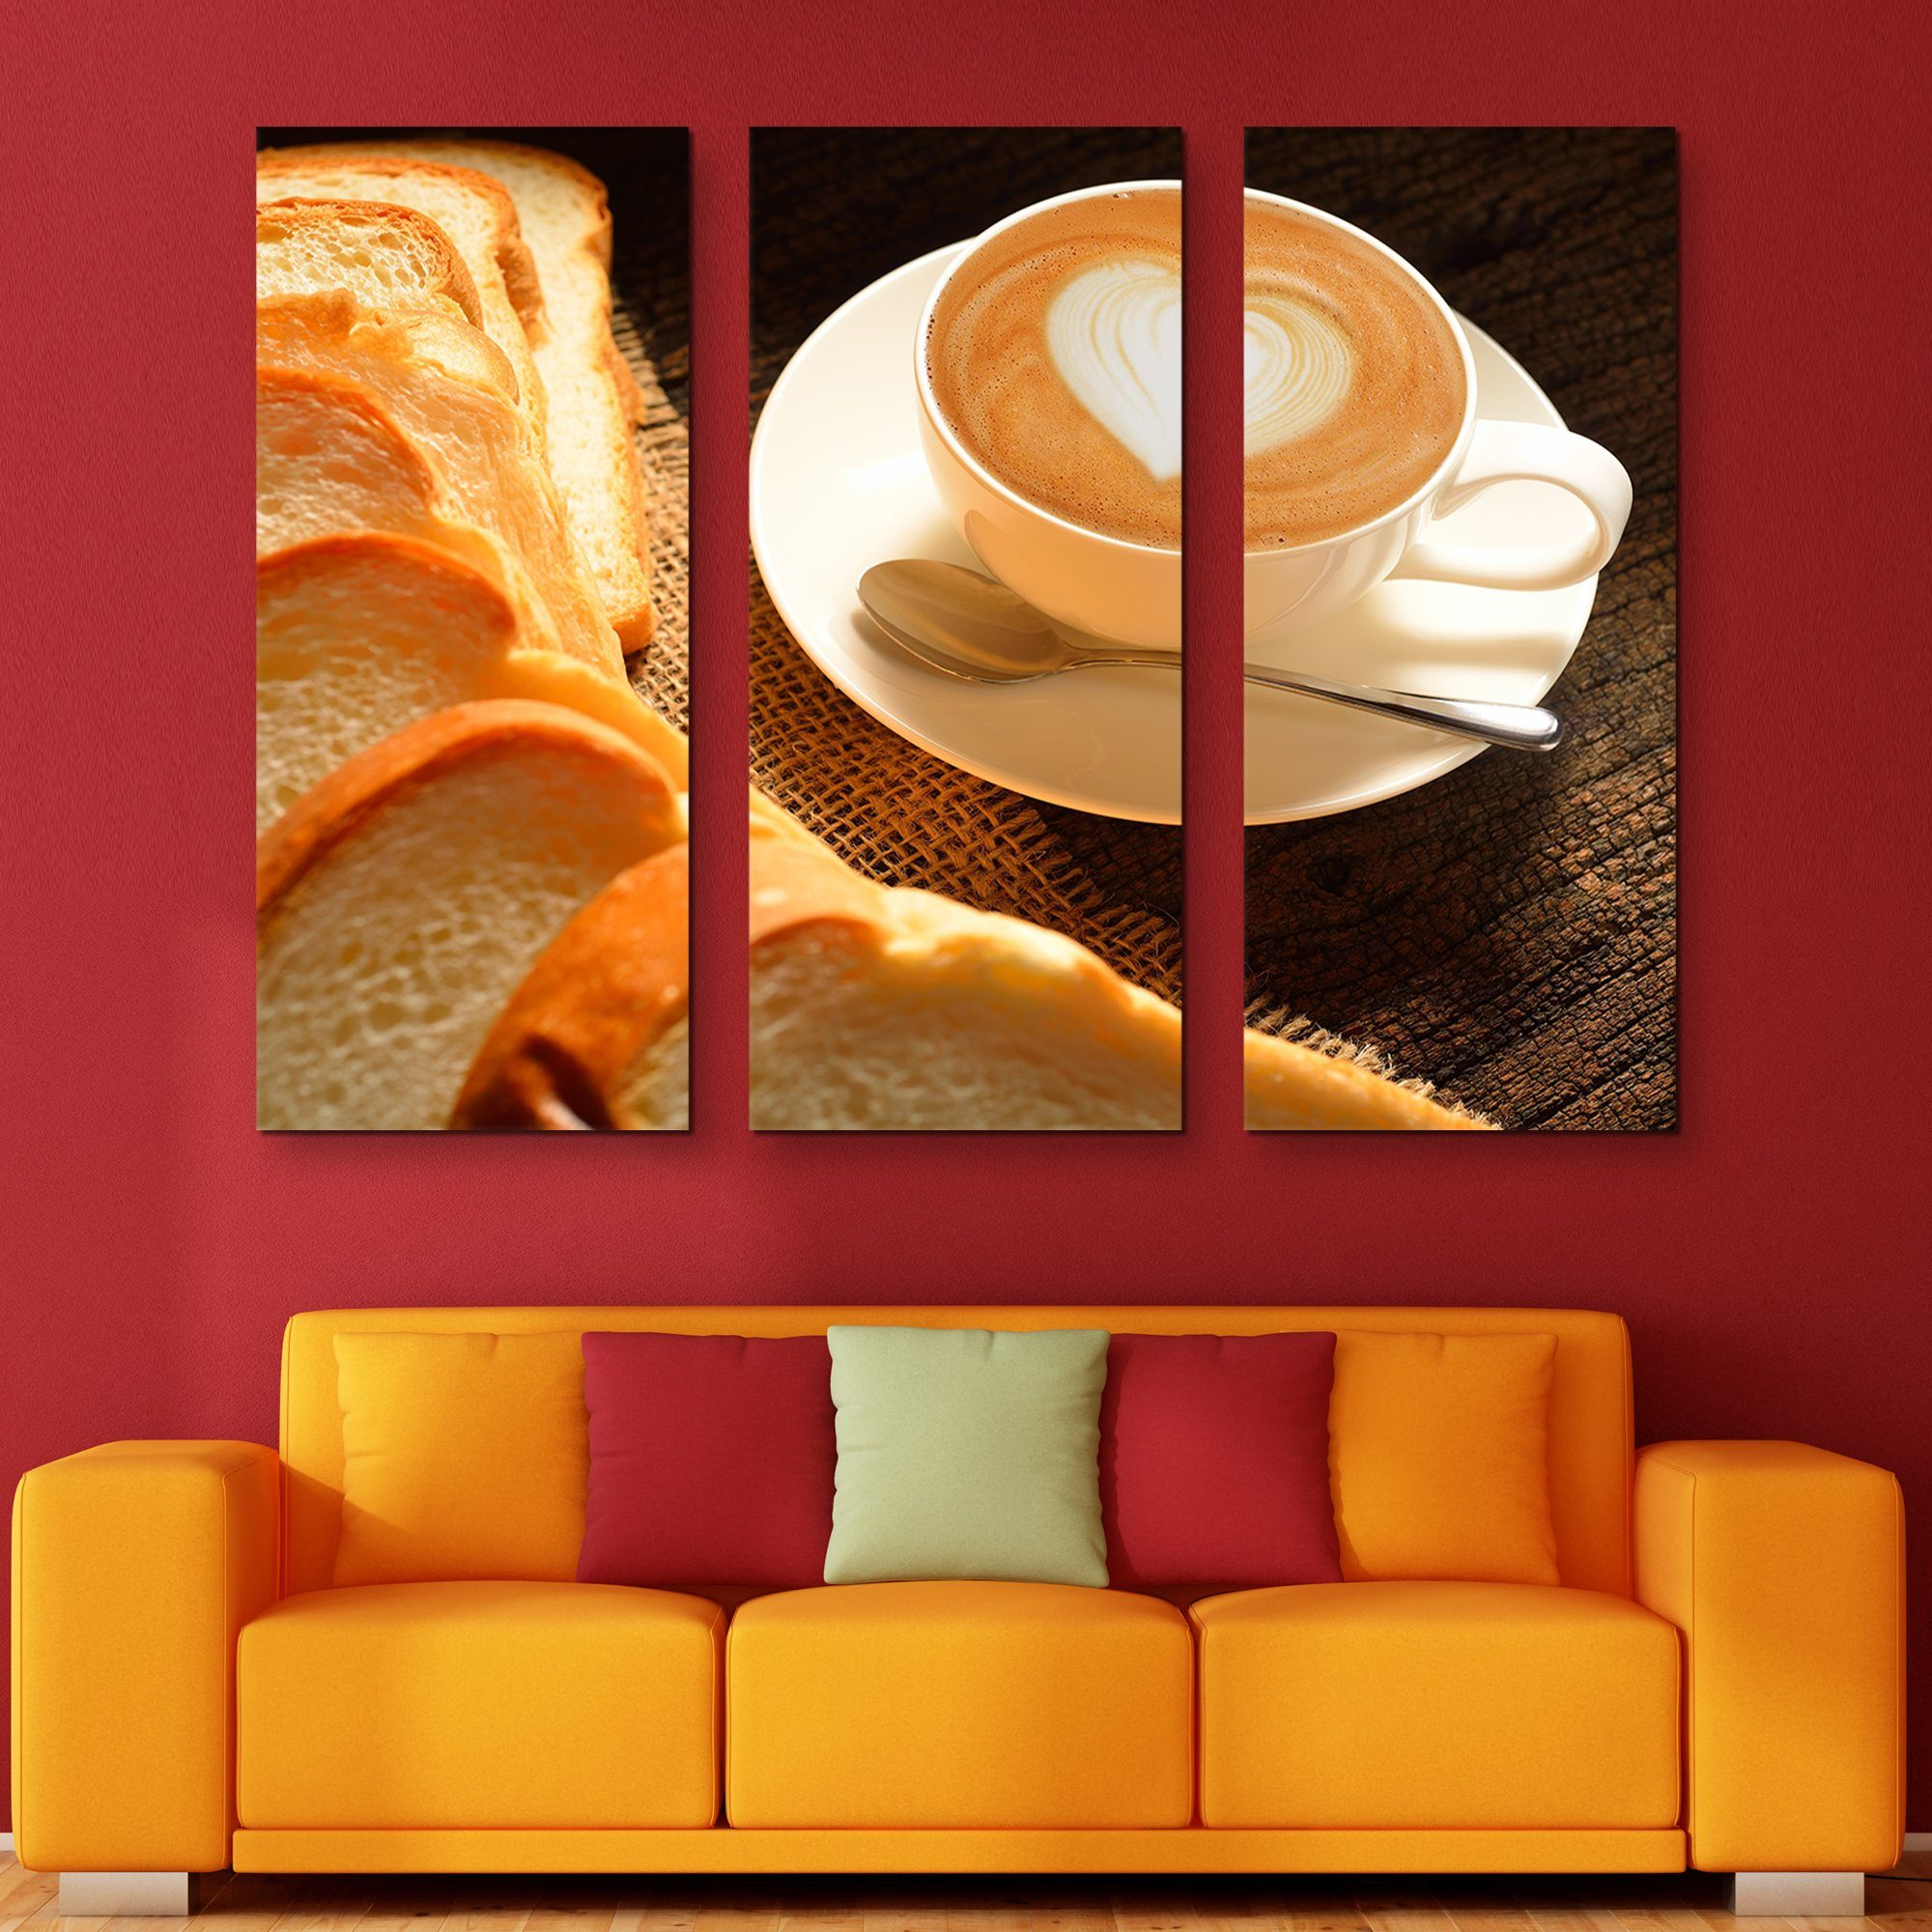 3 piece Some Bread and Latte wall art